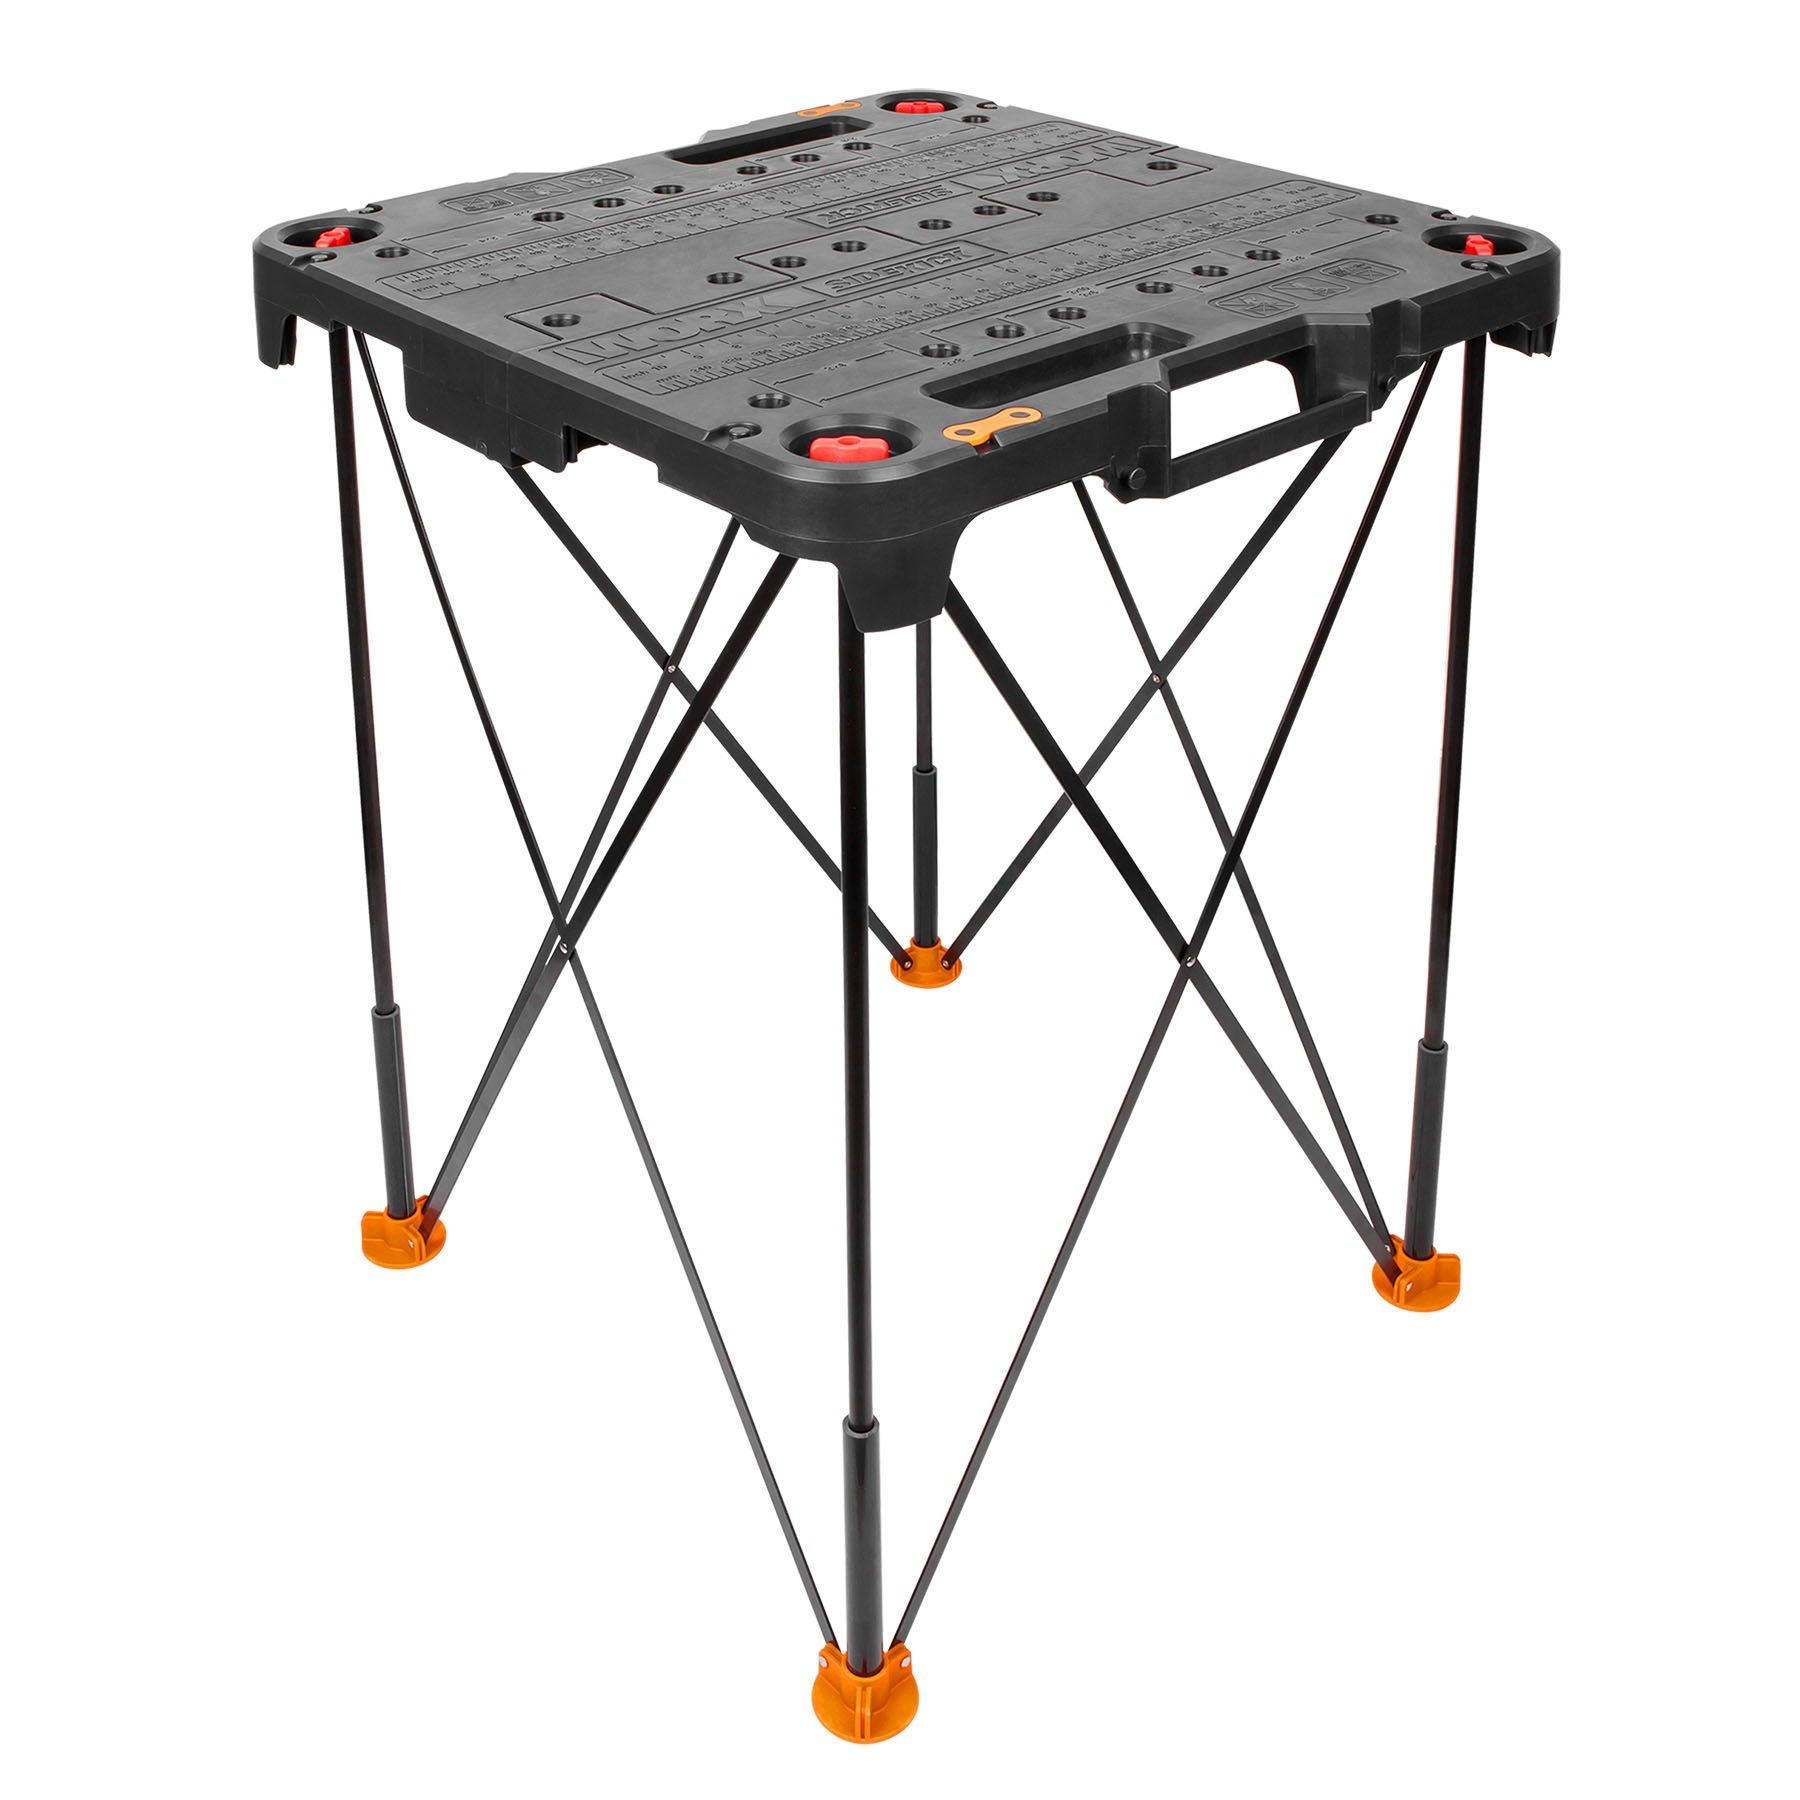 WORX WX066 Sidekick Portable Work Table by Worx